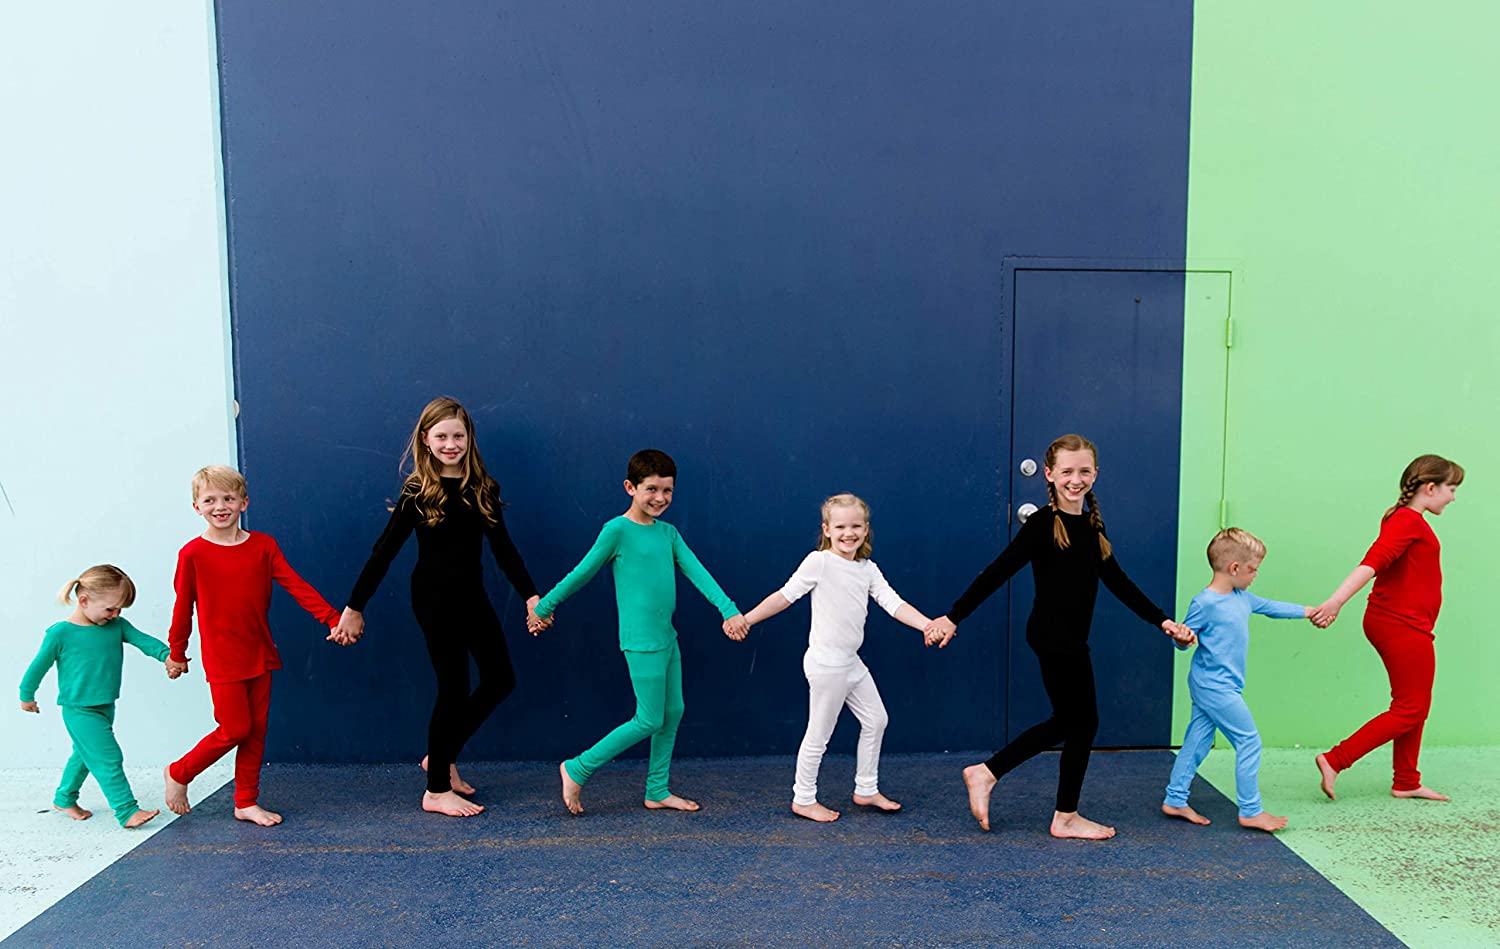 Toddlers and Kids Size 2 to 16 Girls Habit Rags Best Organic Bamboo Cotton Long John Thermal Pajama Set for Big Boys